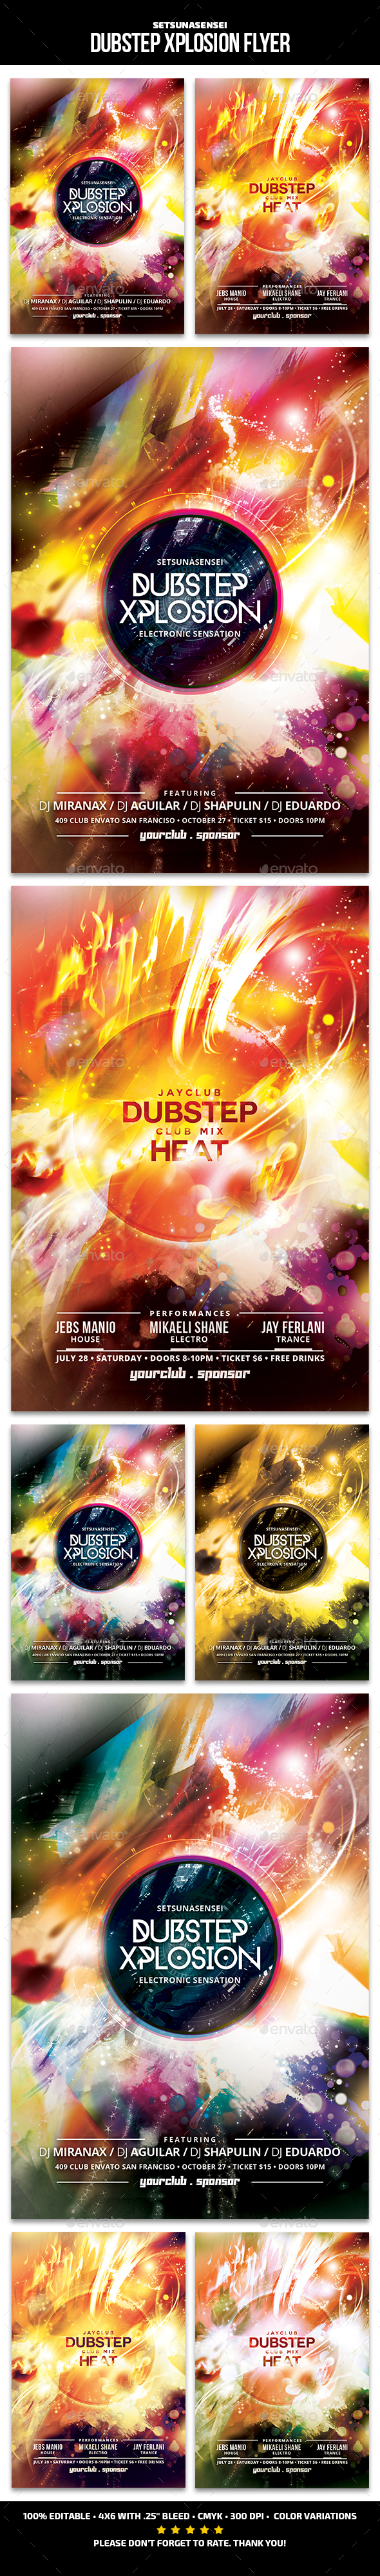 Dubstep Xplosion Flyer - Clubs & Parties Events